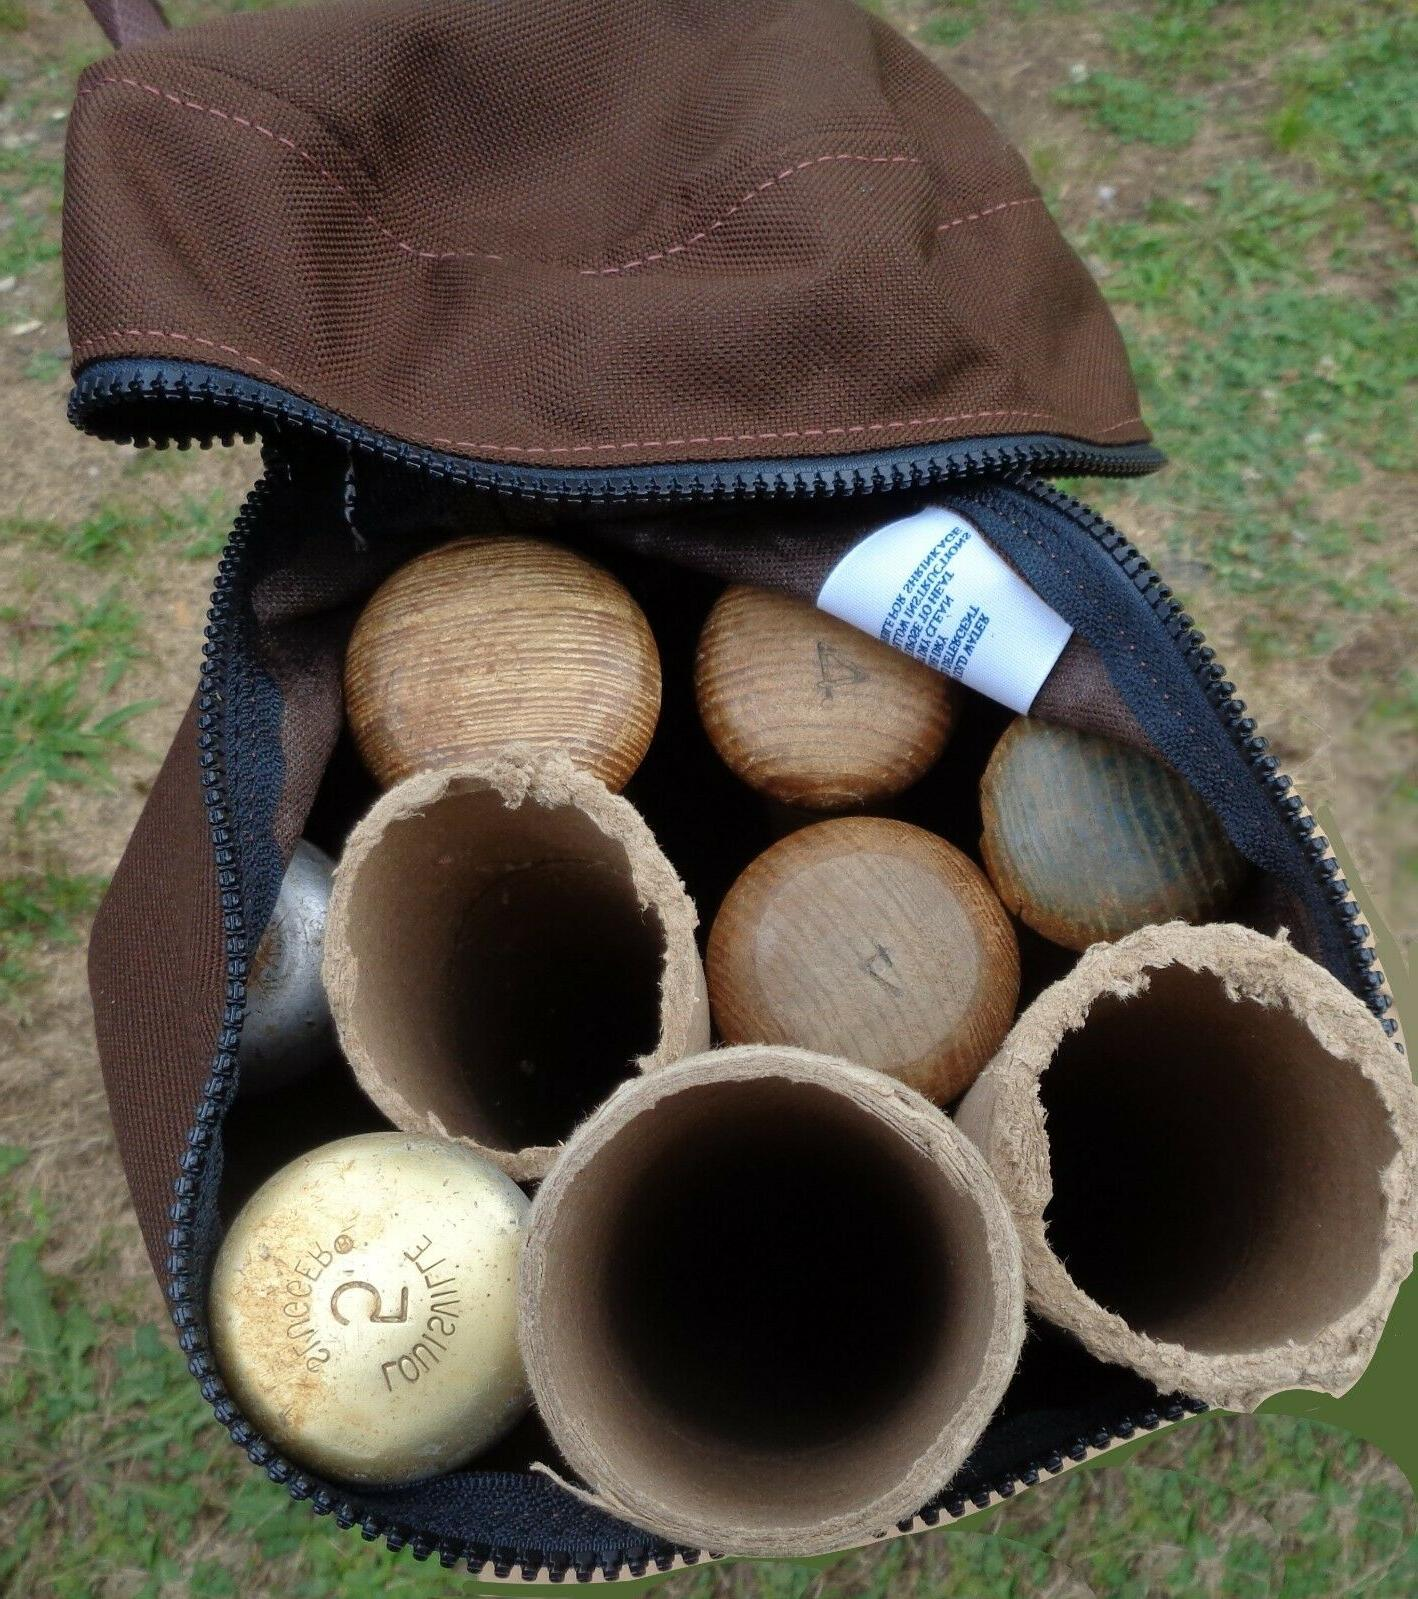 BASEBALL WITH ZIPPER 9 BATS - BY CHAG NY BROWN